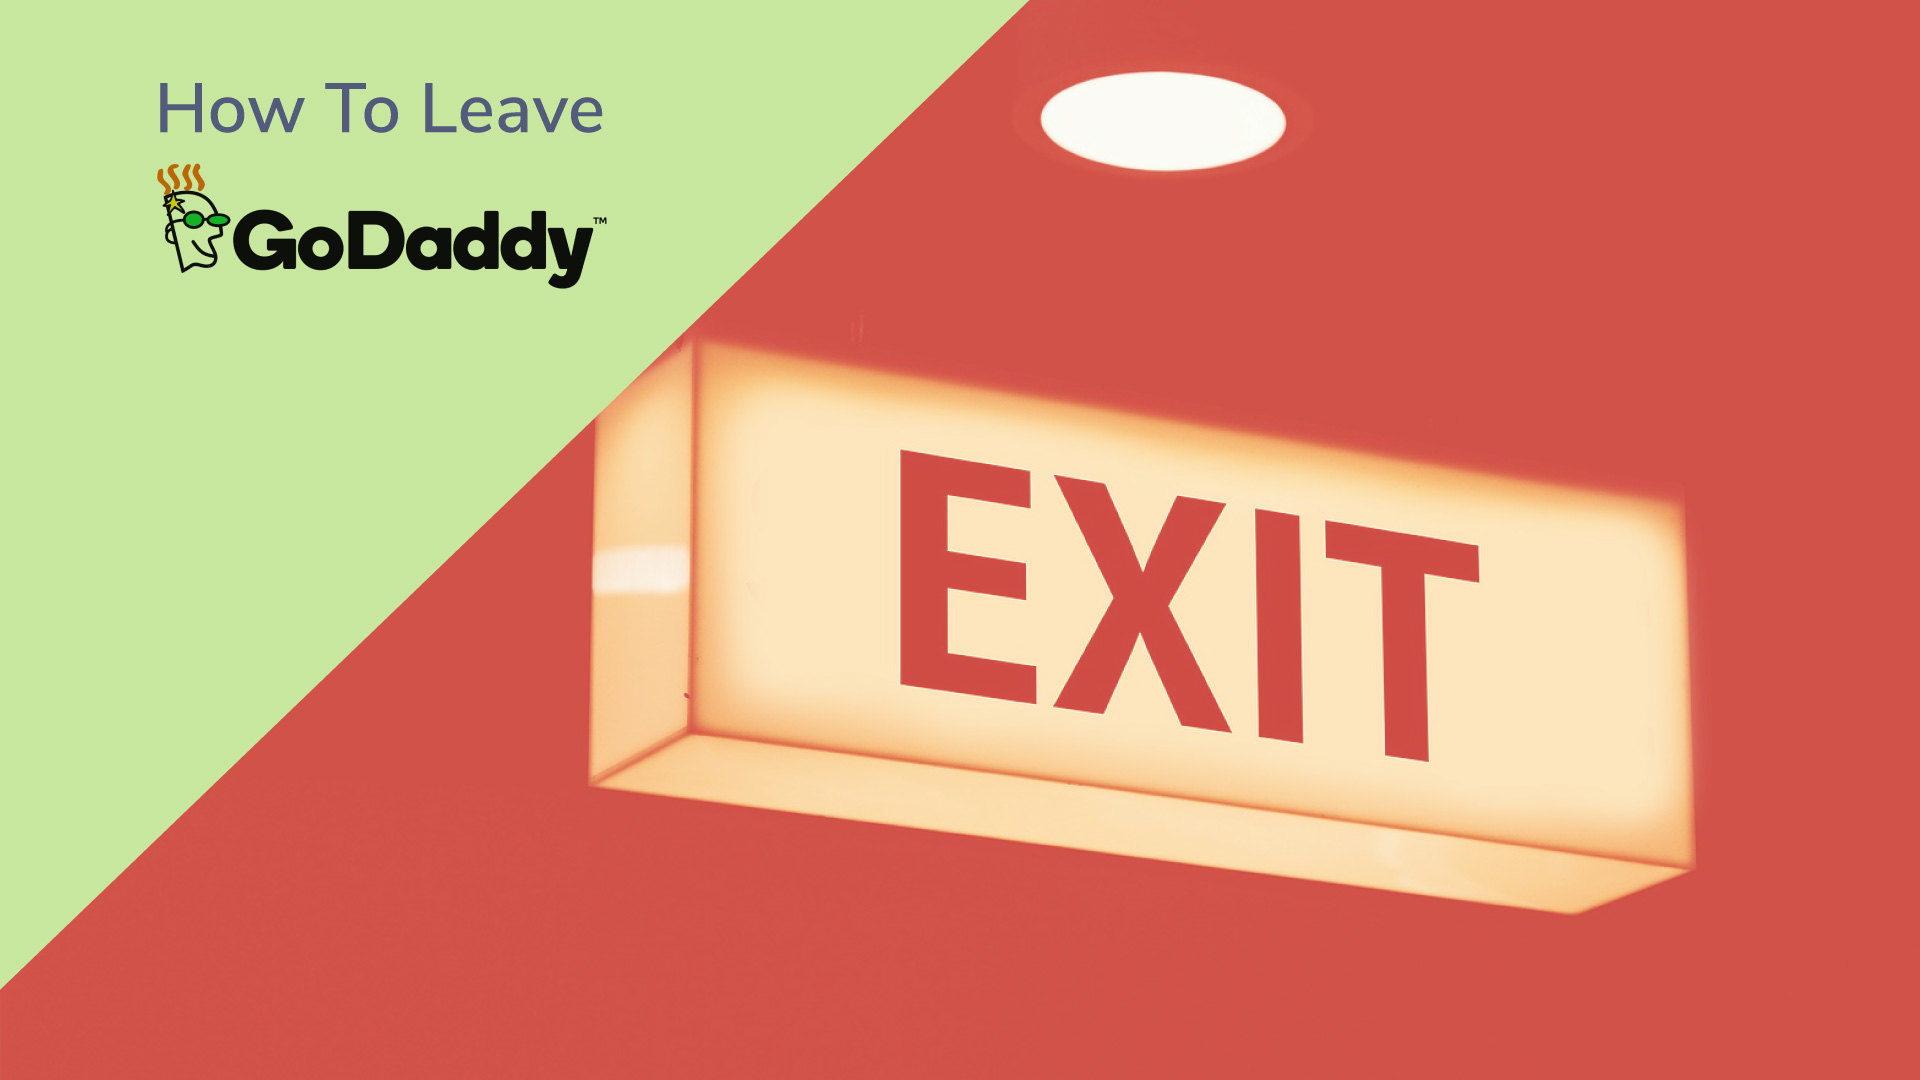 Godaddy terrible time to leave